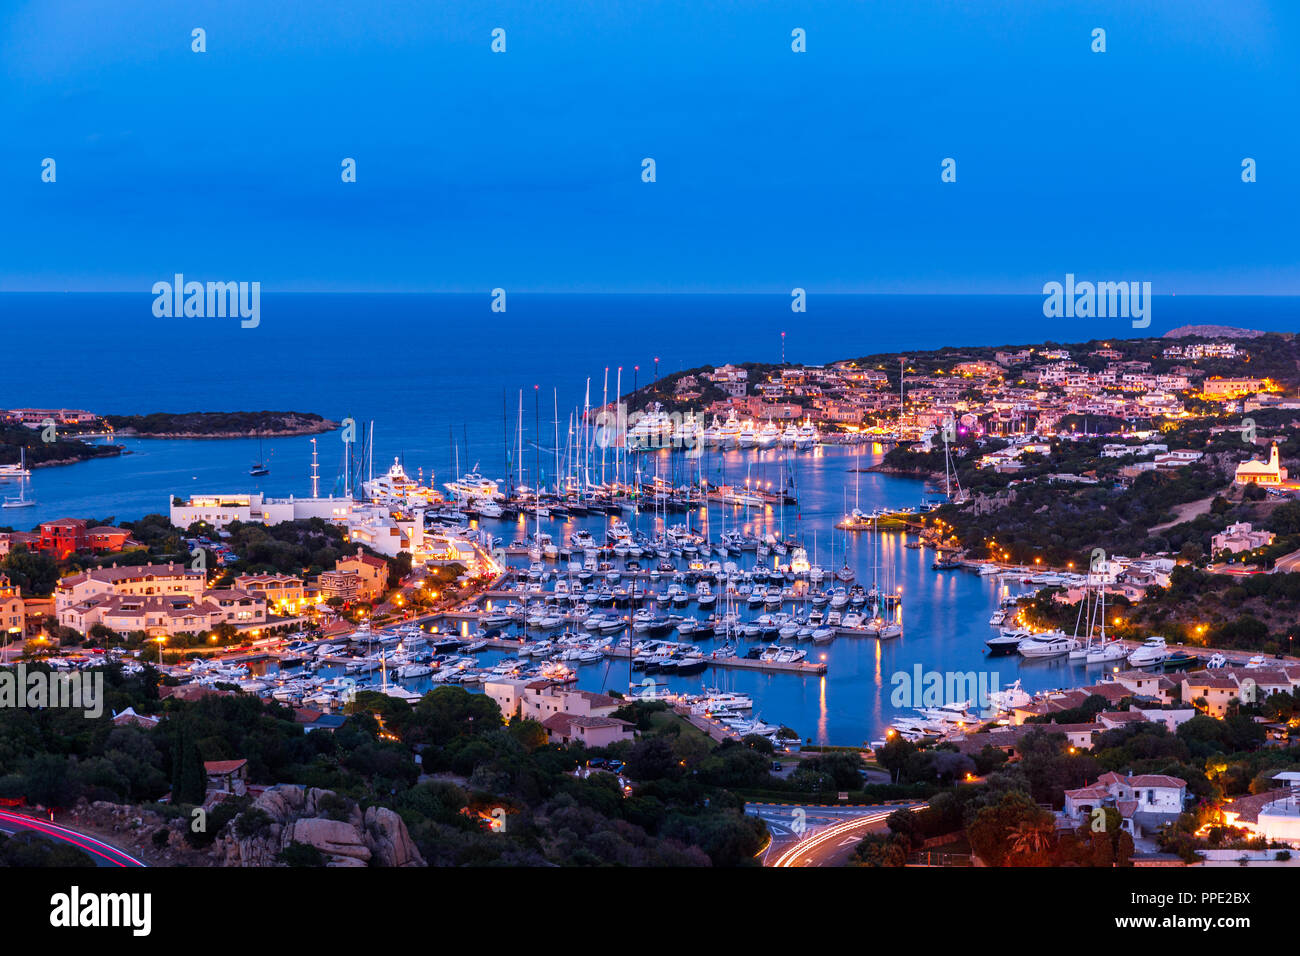 Sunset at the Porto Cervo and the Yacht Club Costa Smeralda - Stock Image